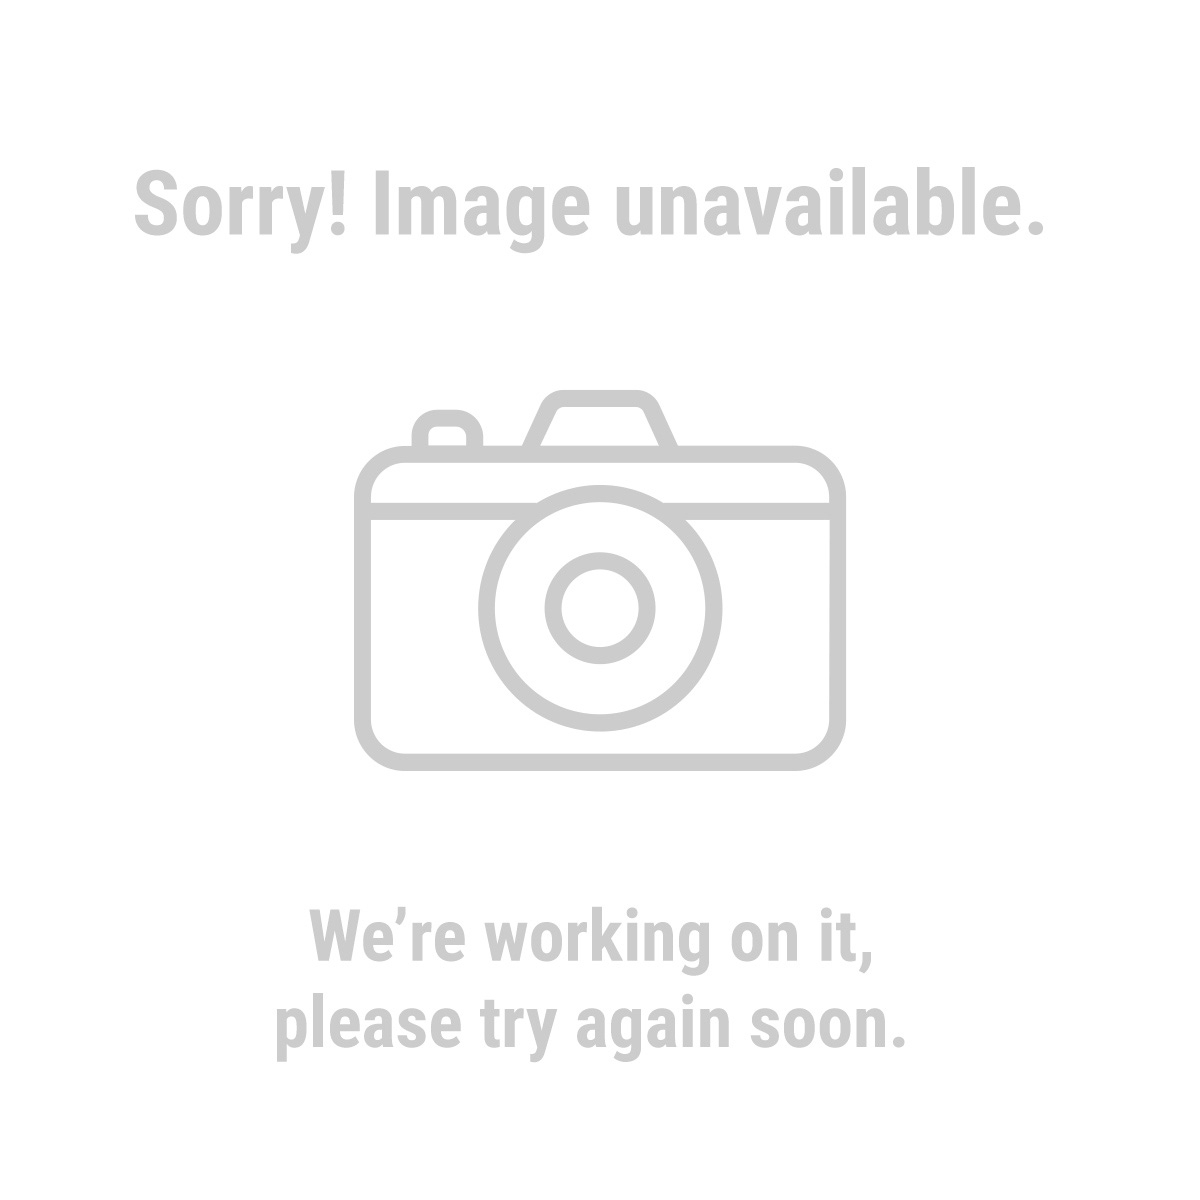 "Haul-Master 66771 600 Lb. Capacity 78"" Tag-Along Trailer"